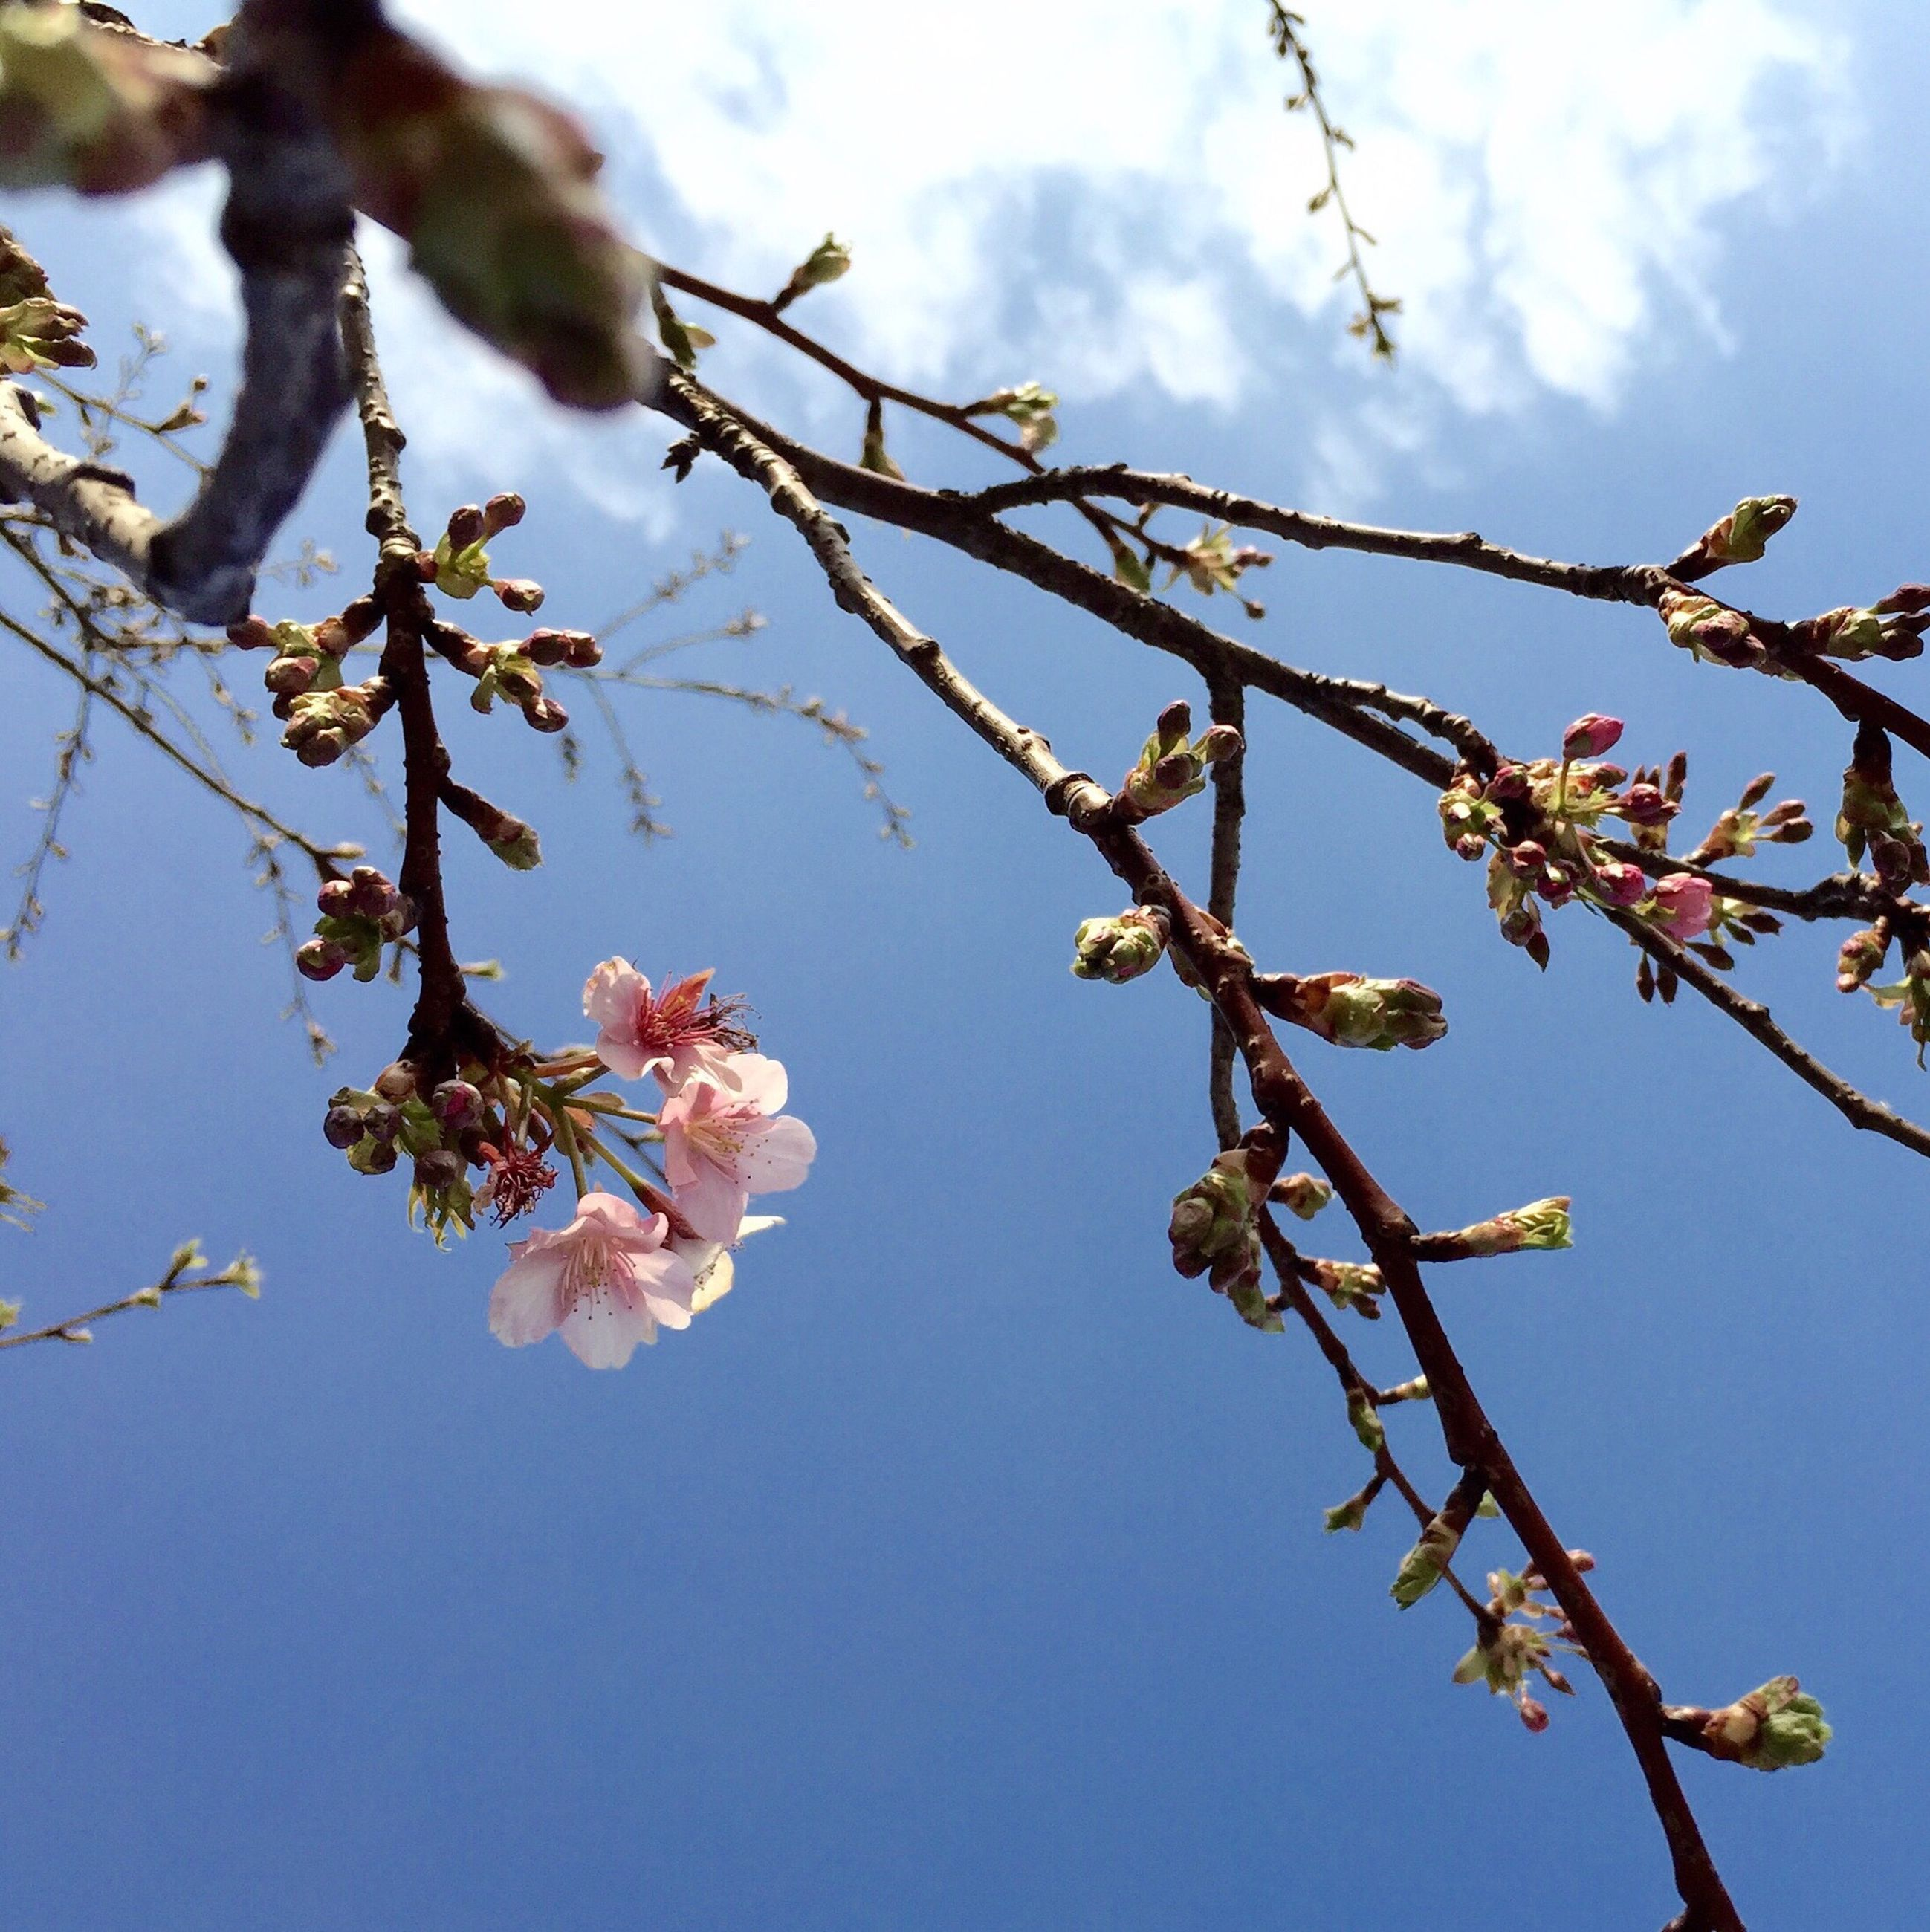 branch, low angle view, tree, flower, growth, sky, freshness, nature, beauty in nature, twig, fragility, blossom, clear sky, cherry tree, blue, day, cherry blossom, outdoors, springtime, leaf